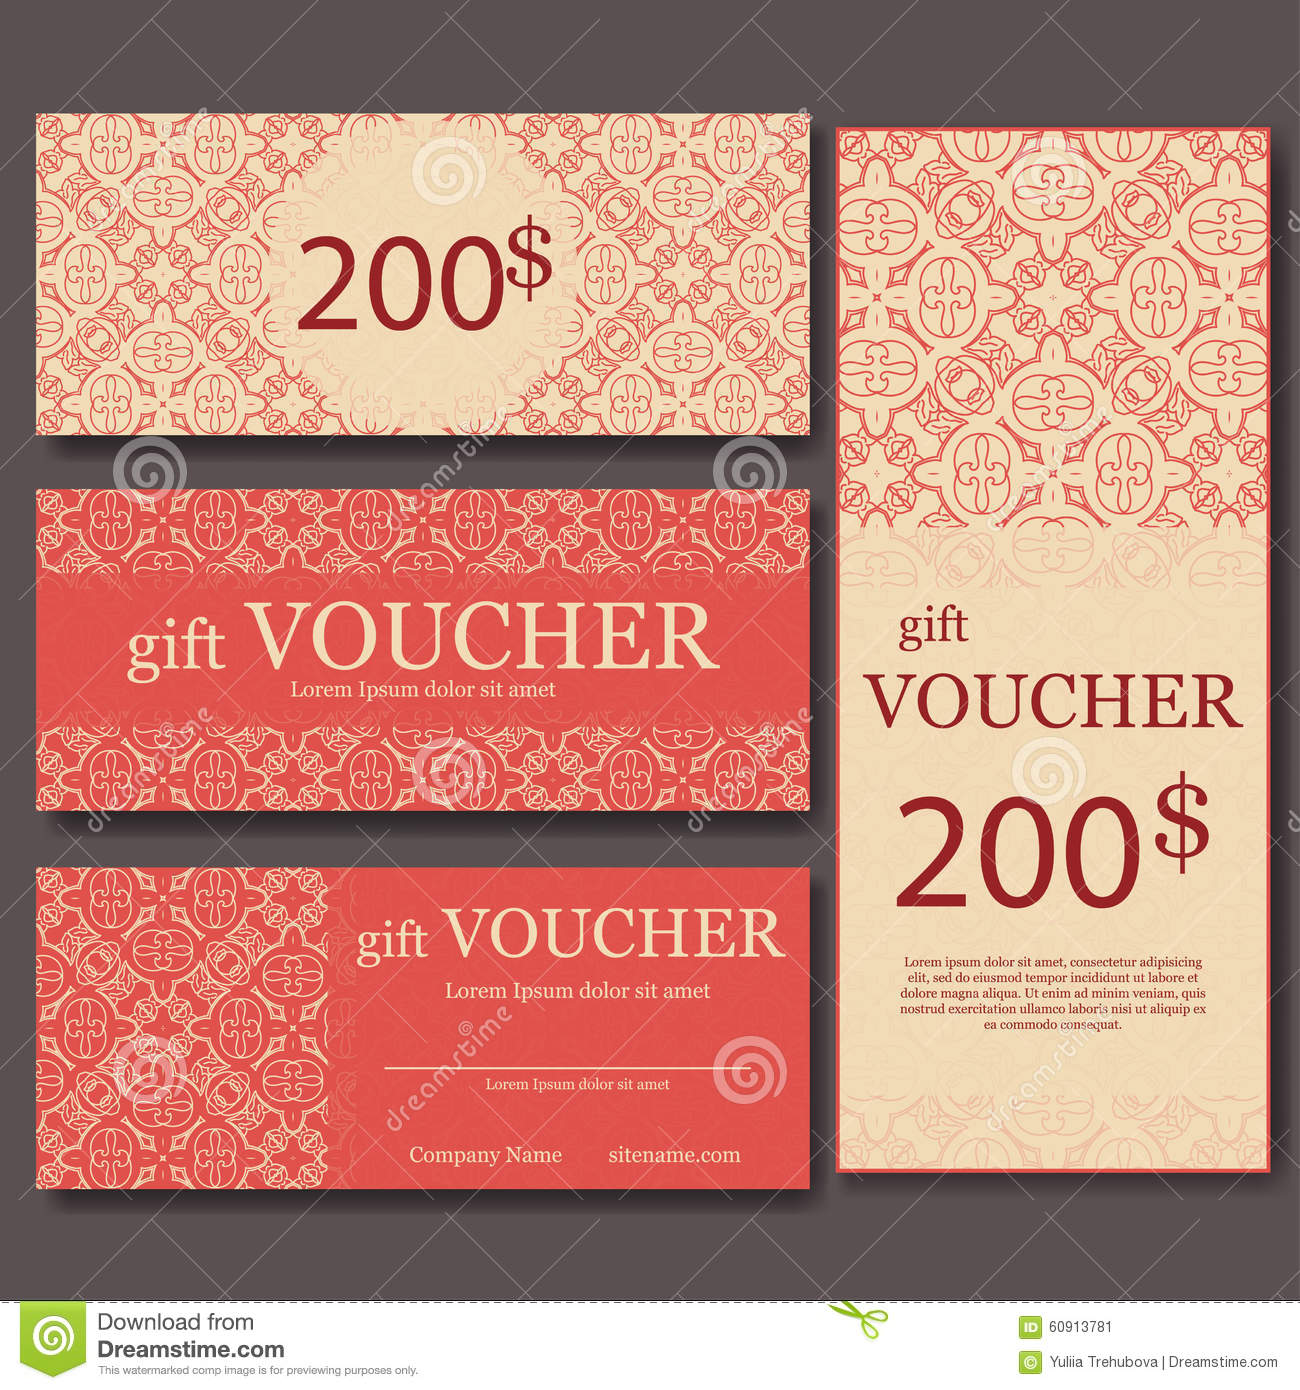 Gift Voucher Template With Mandala. Design Certificate For Sport Center,  Magazine Or Etc. Vector Gift Coupon With Ornament On Back  Fun Voucher Template